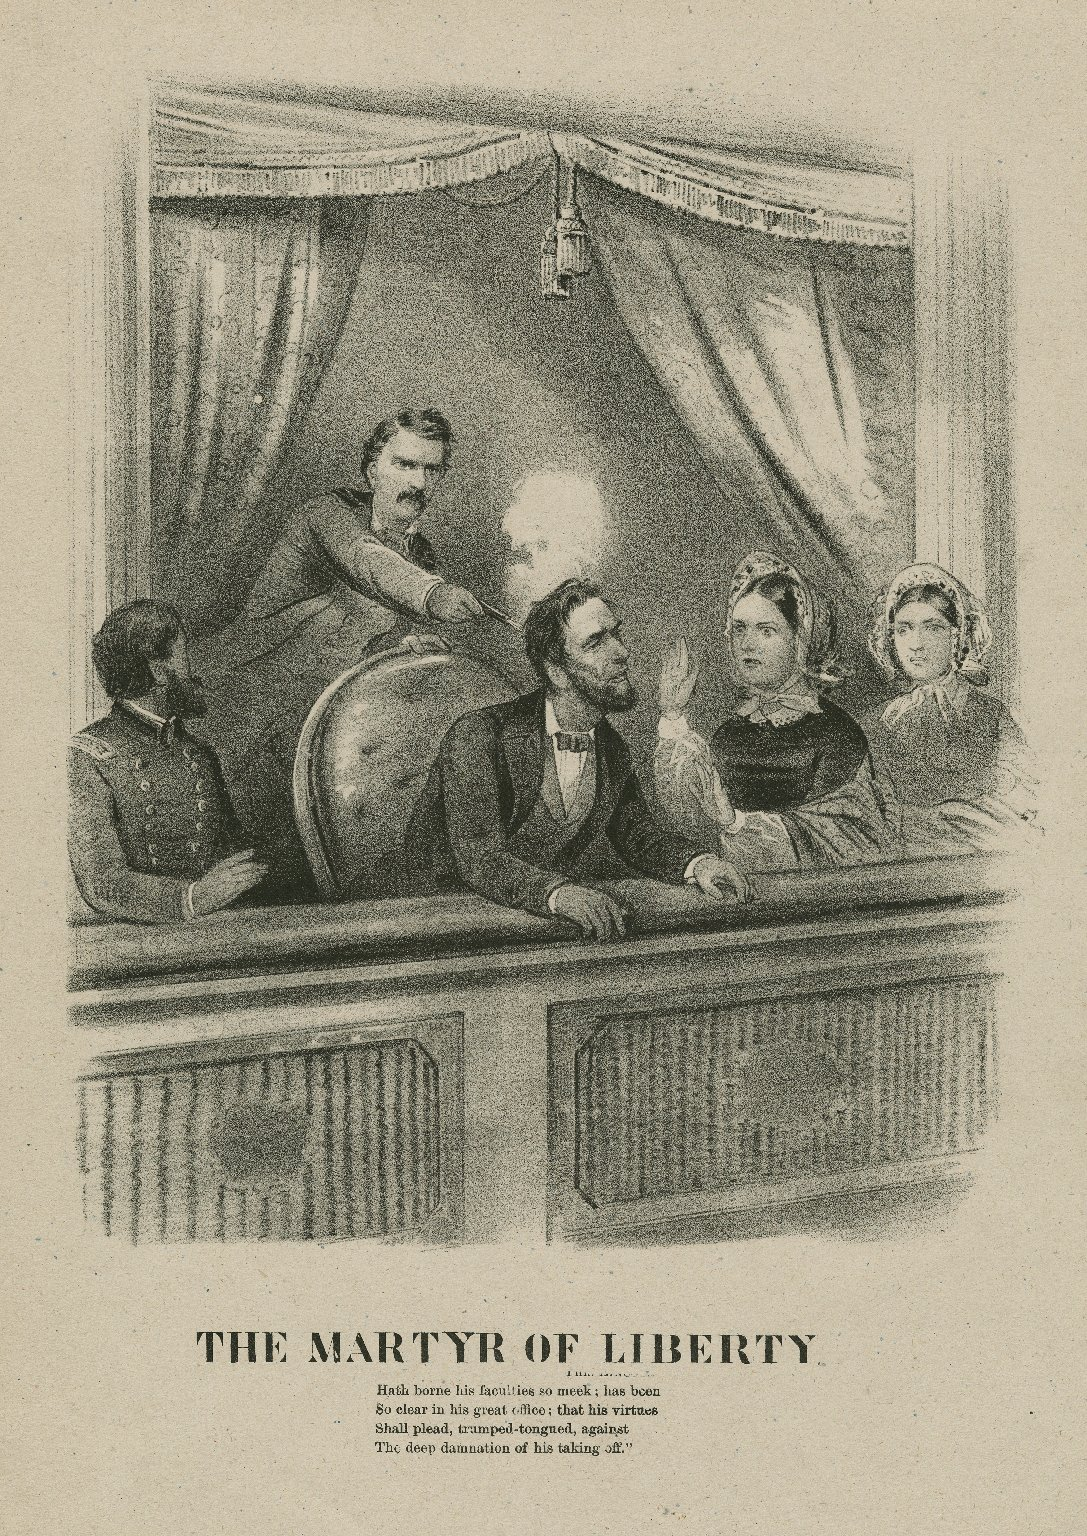 The Martyr of liberty ... [John Wilkes Booth shooting Lincoln] [graphic].